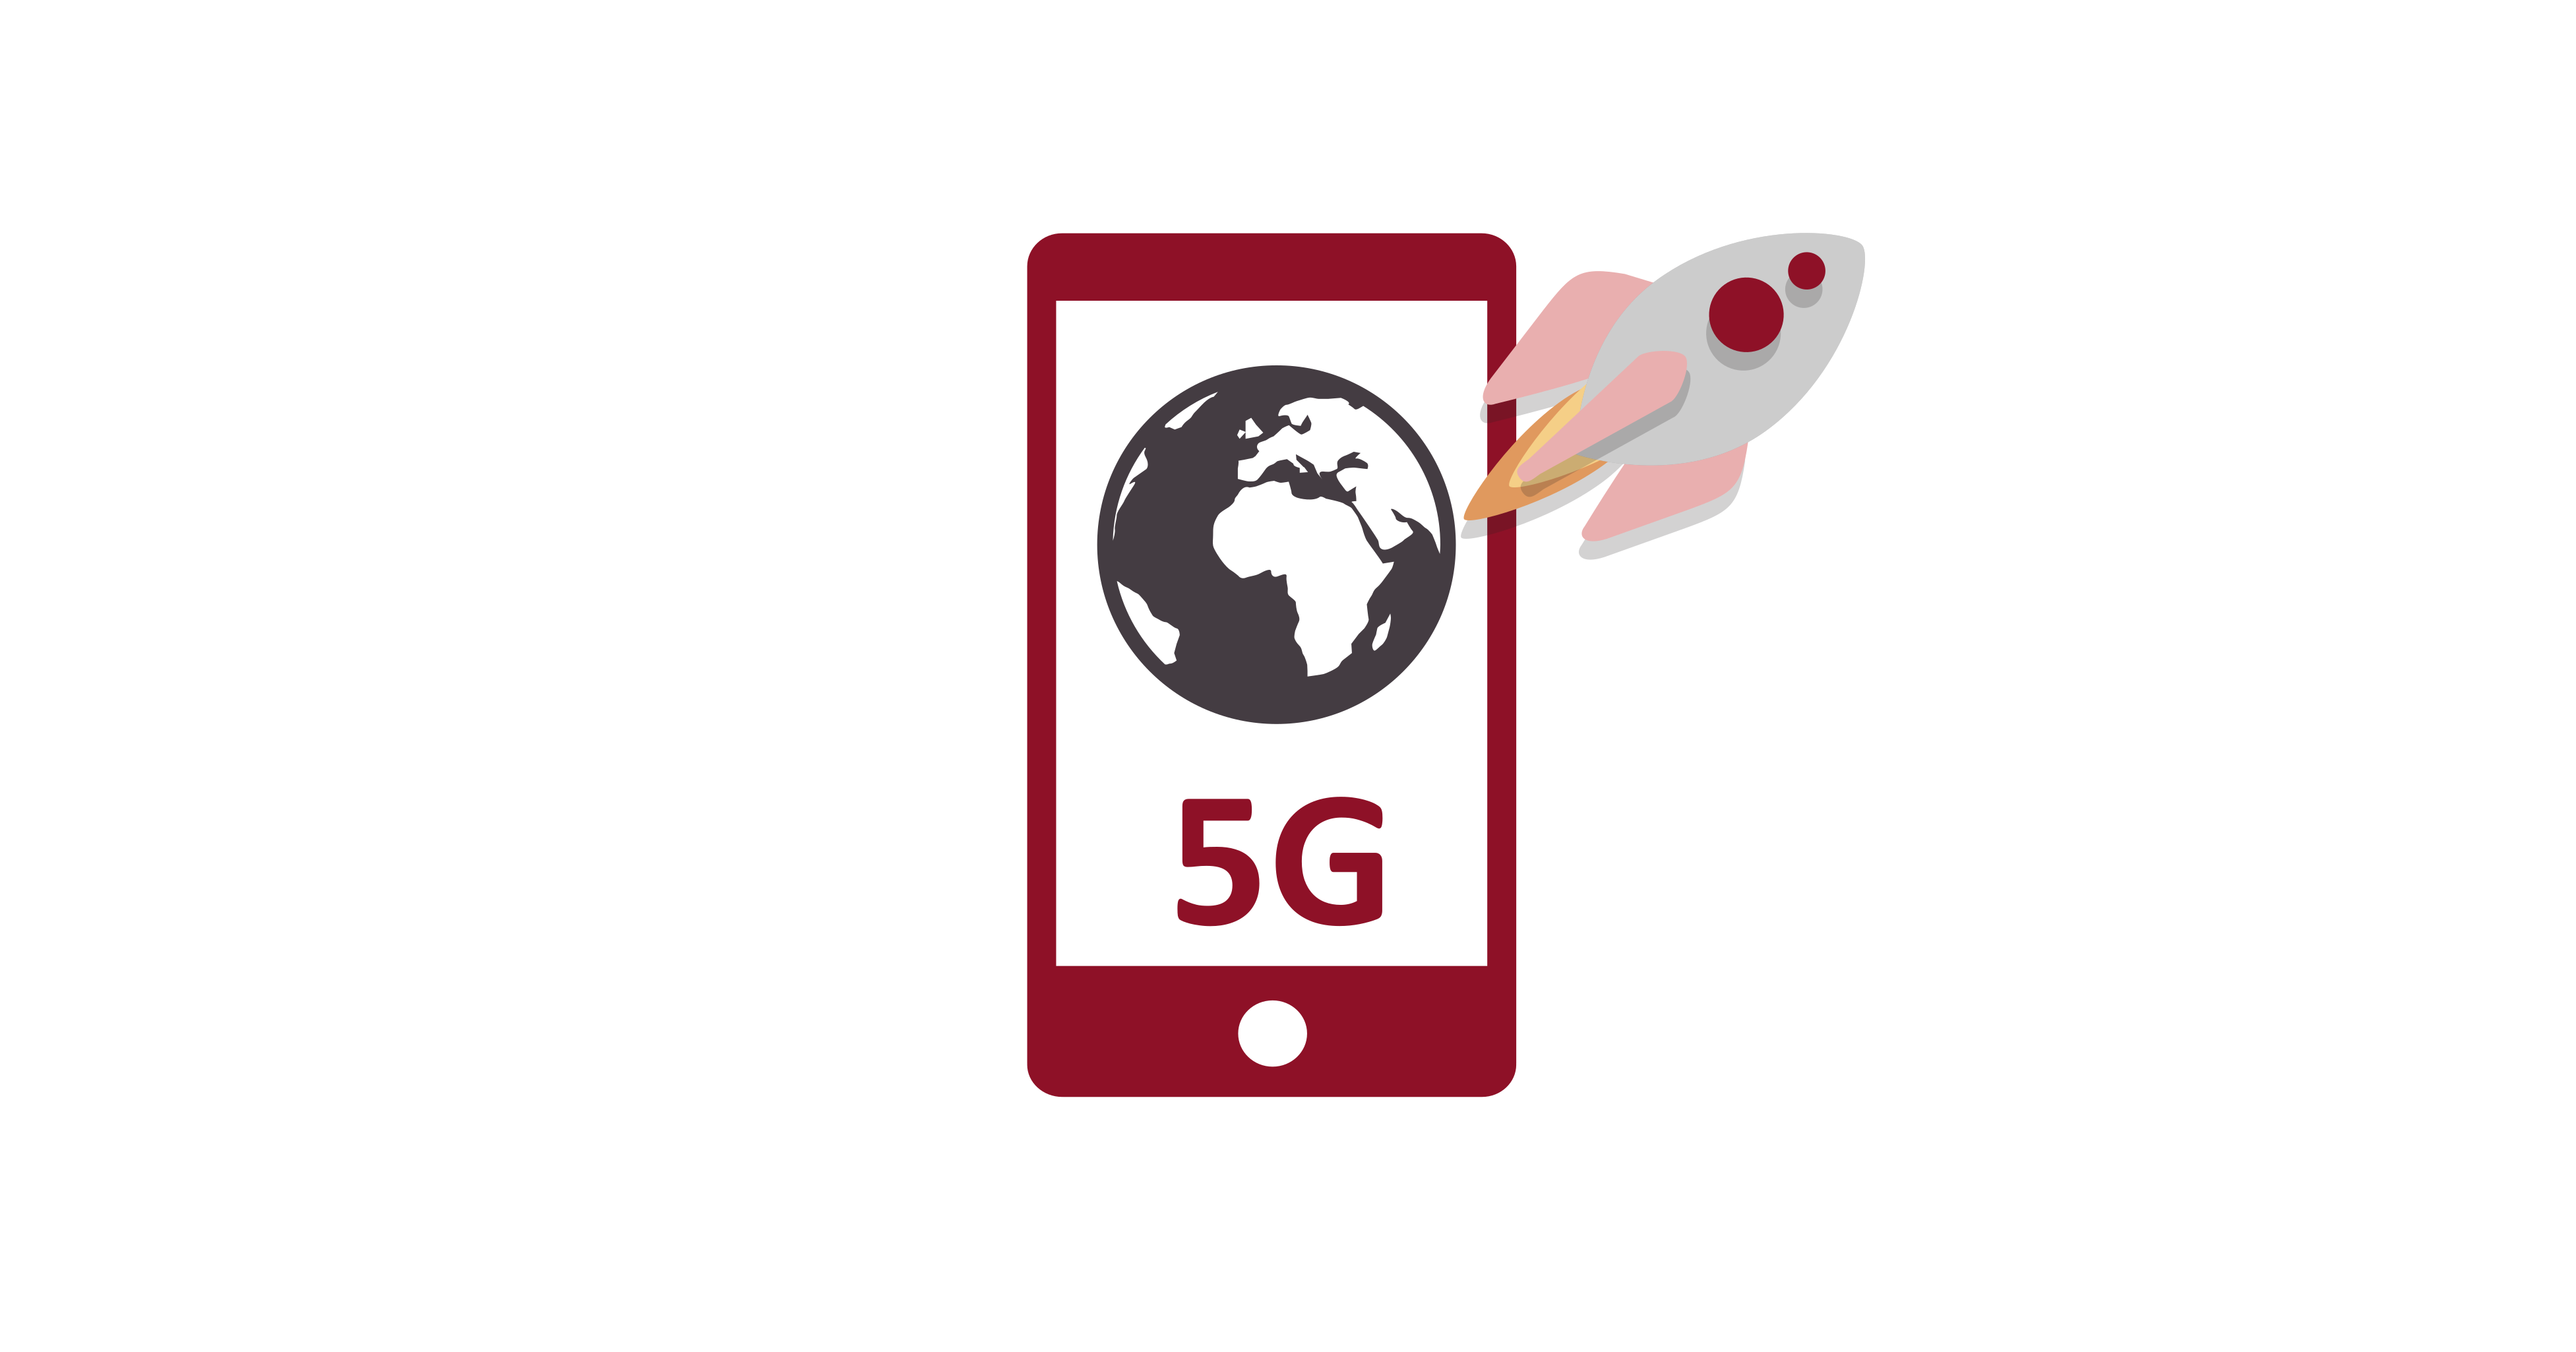 5G service - faster download speeds and more complex mobile internet apps